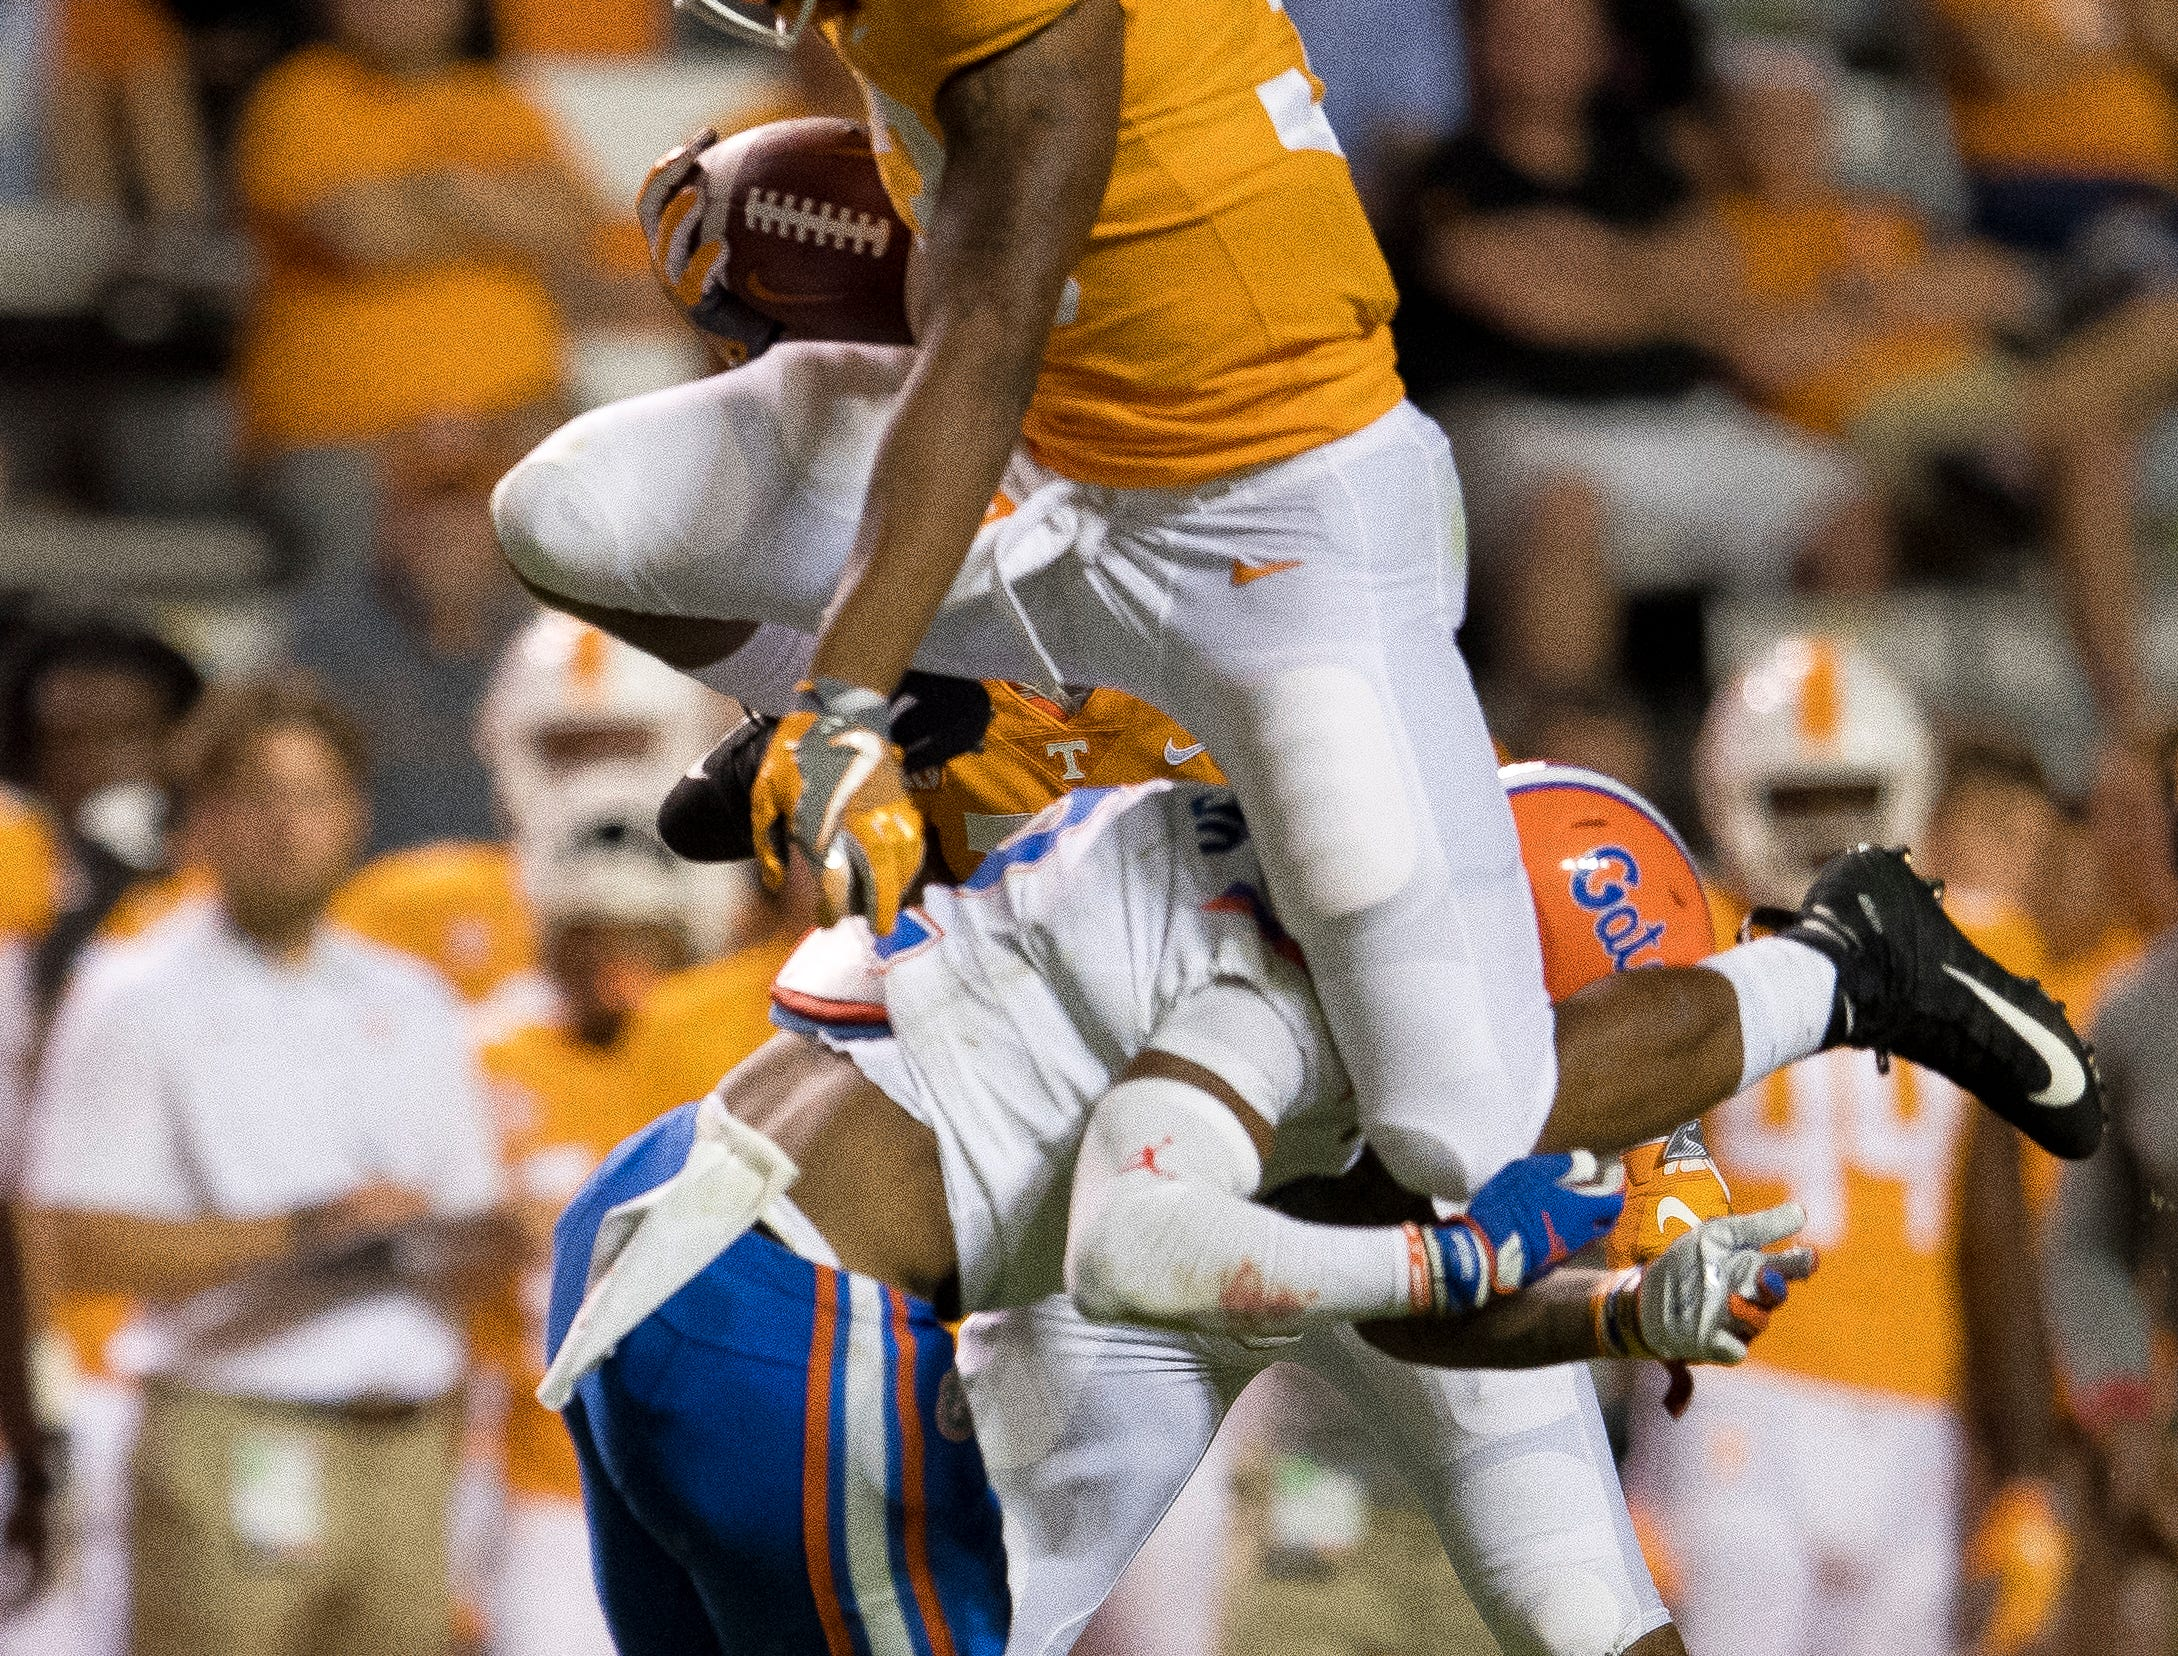 Tennessee running back Jeremy Banks (33) leaps over a Florida defender during the Tennessee Volunteers' game against Florida in Neyland Stadium on Saturday, Sept. 22, 2018.